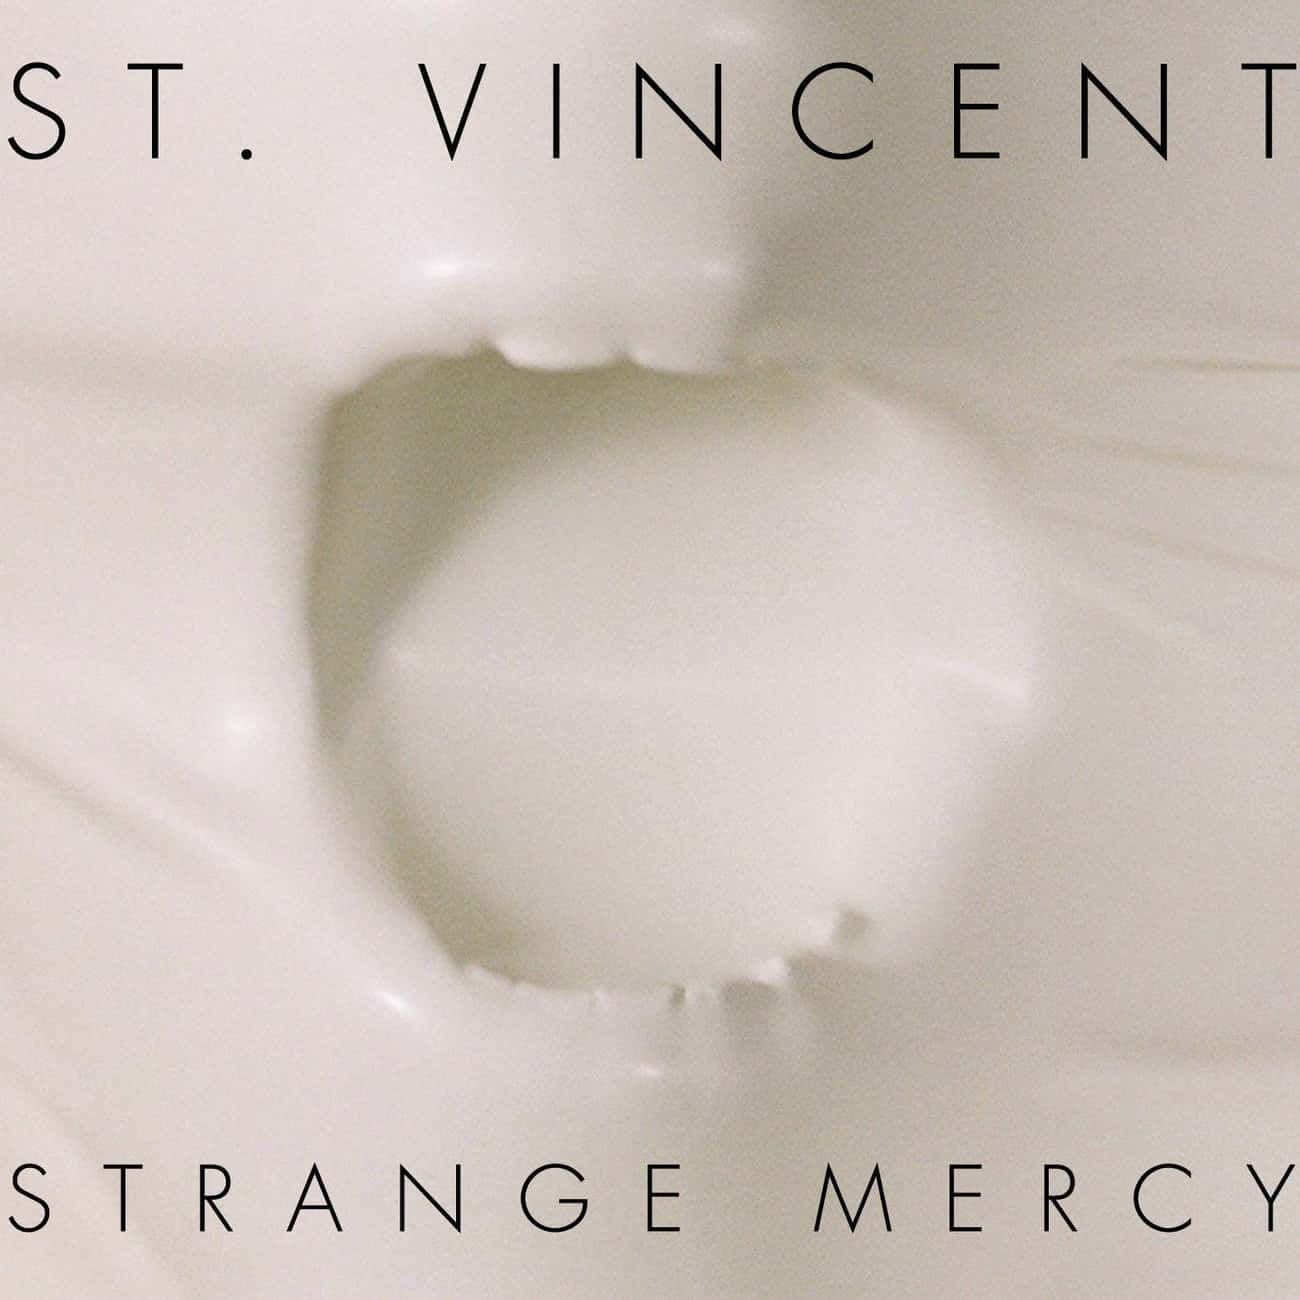 Strange Mercy is listed (or ranked) 2 on the list The Best St. Vincent Albums, Ranked